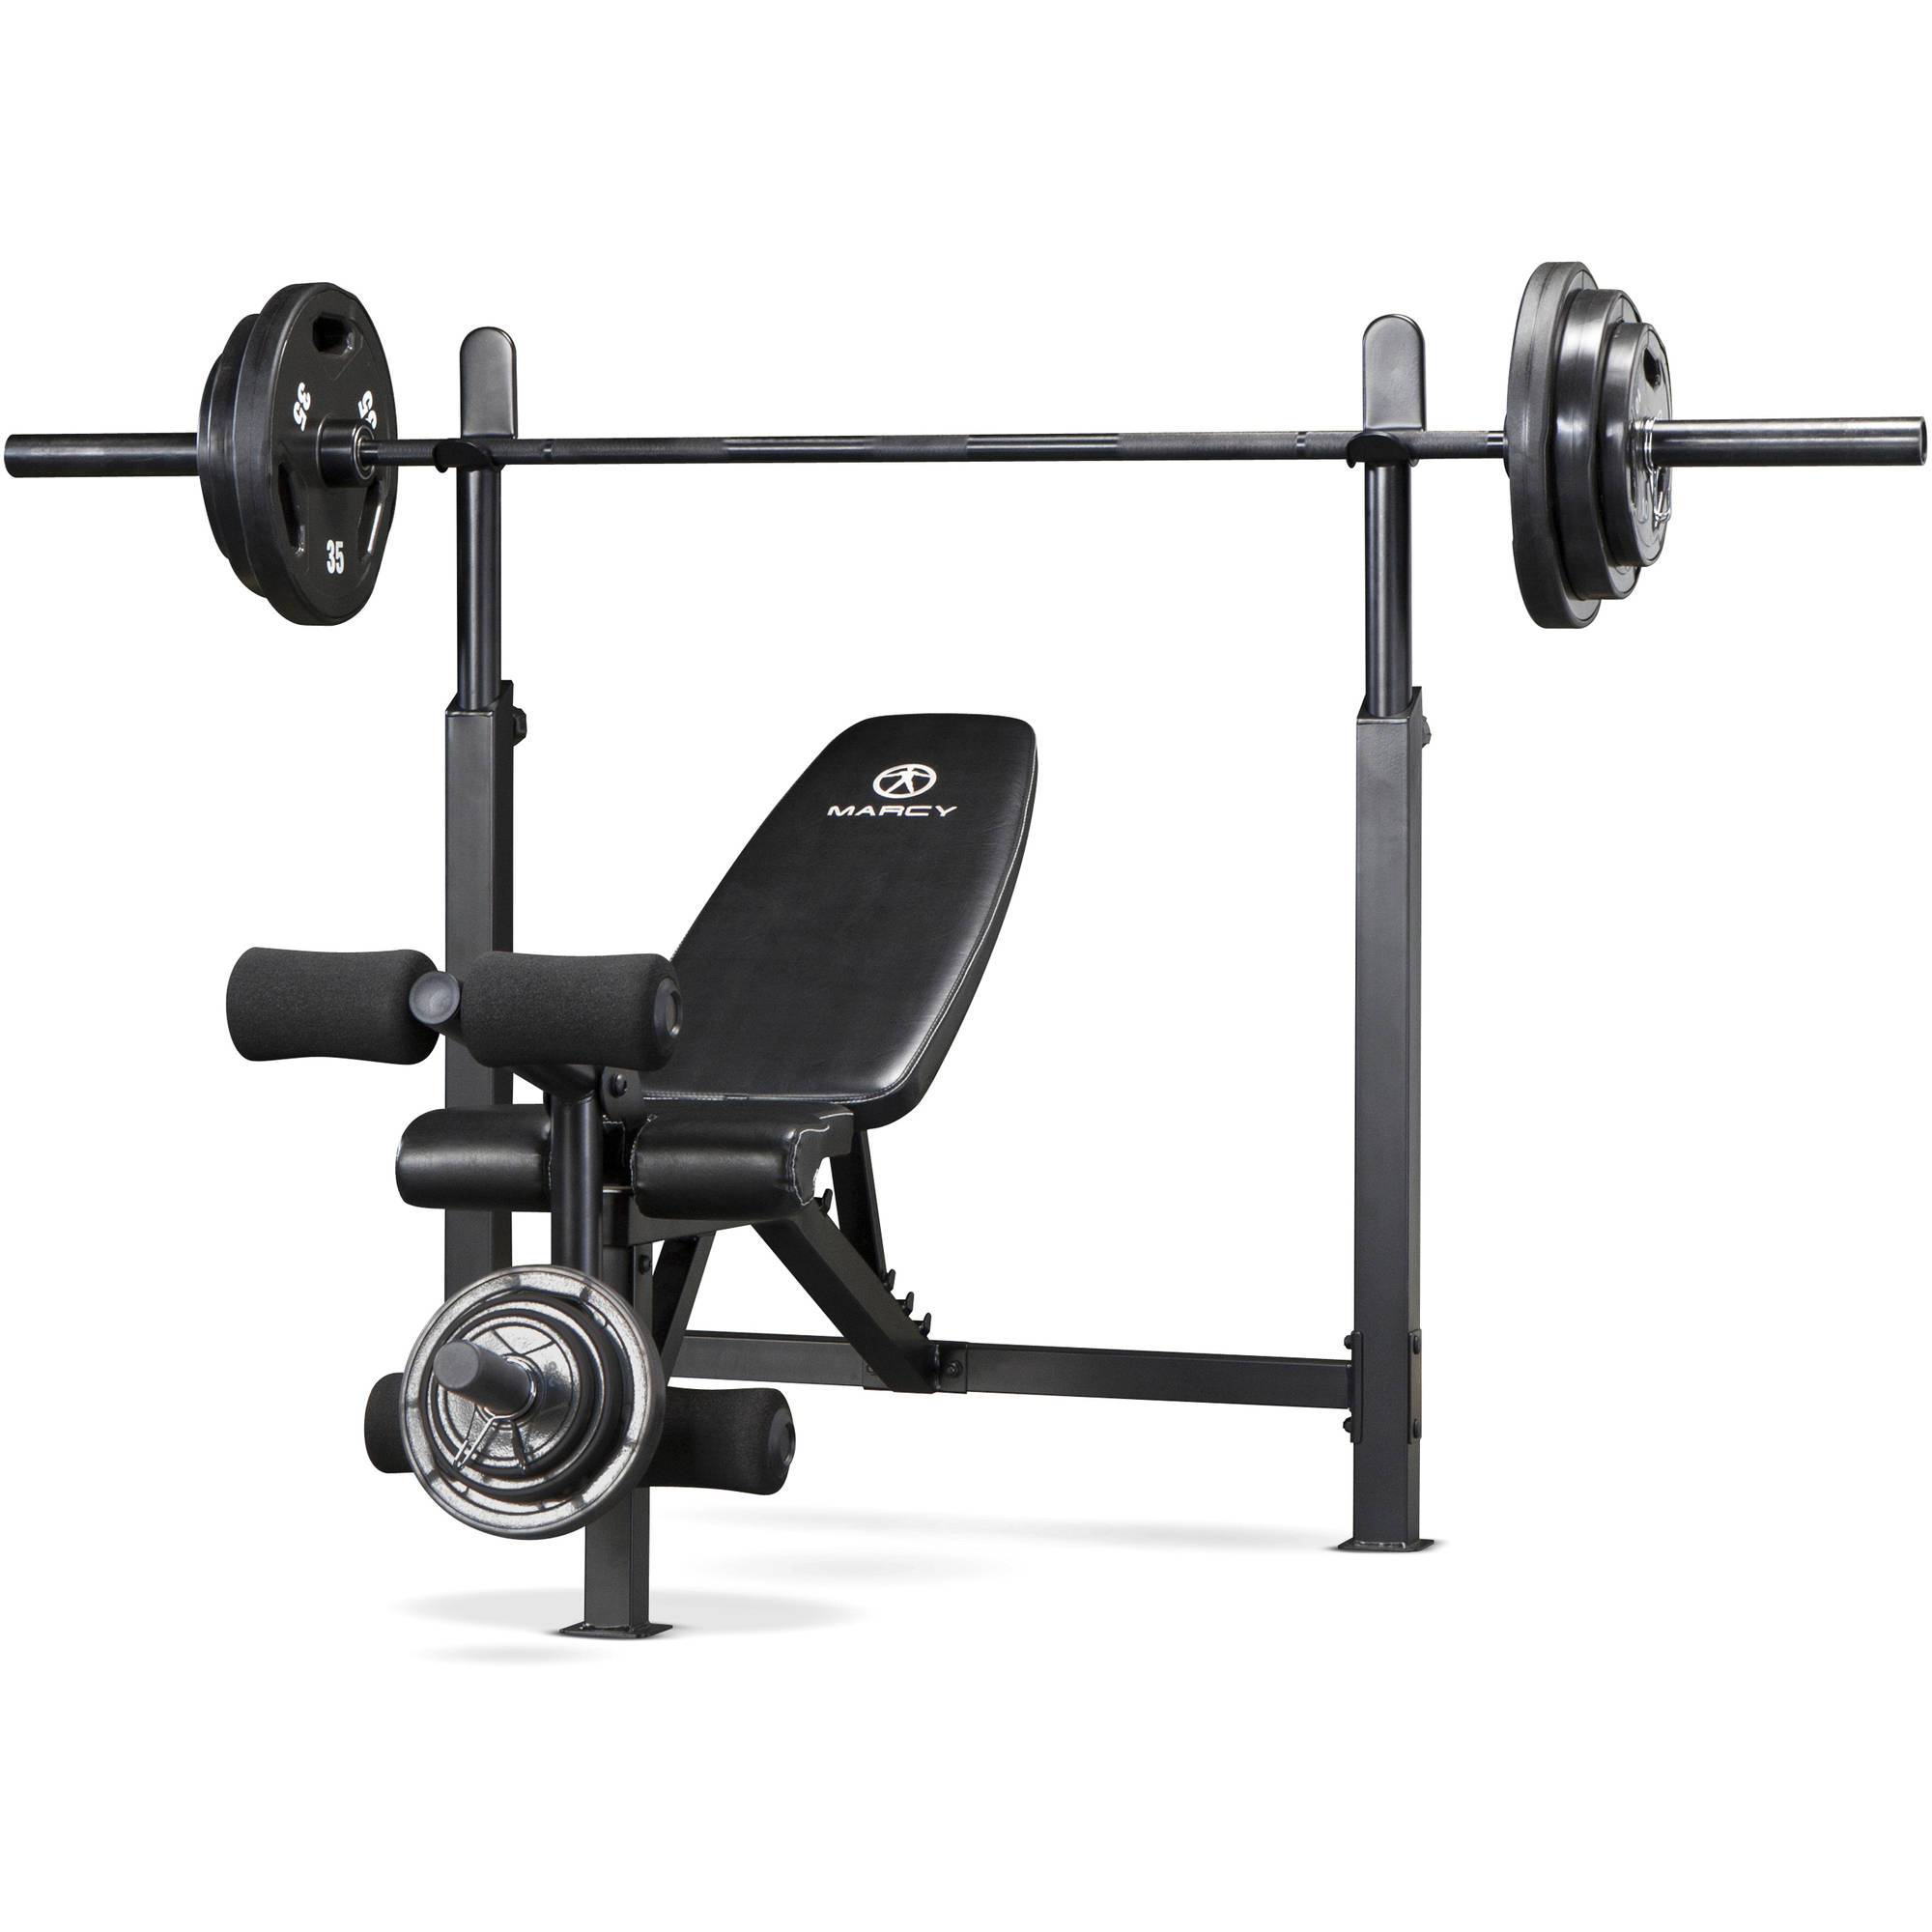 Weight Benches on Sale | Craigslist Weight Bench | Craigslist Los Angeles Exercise Equipment